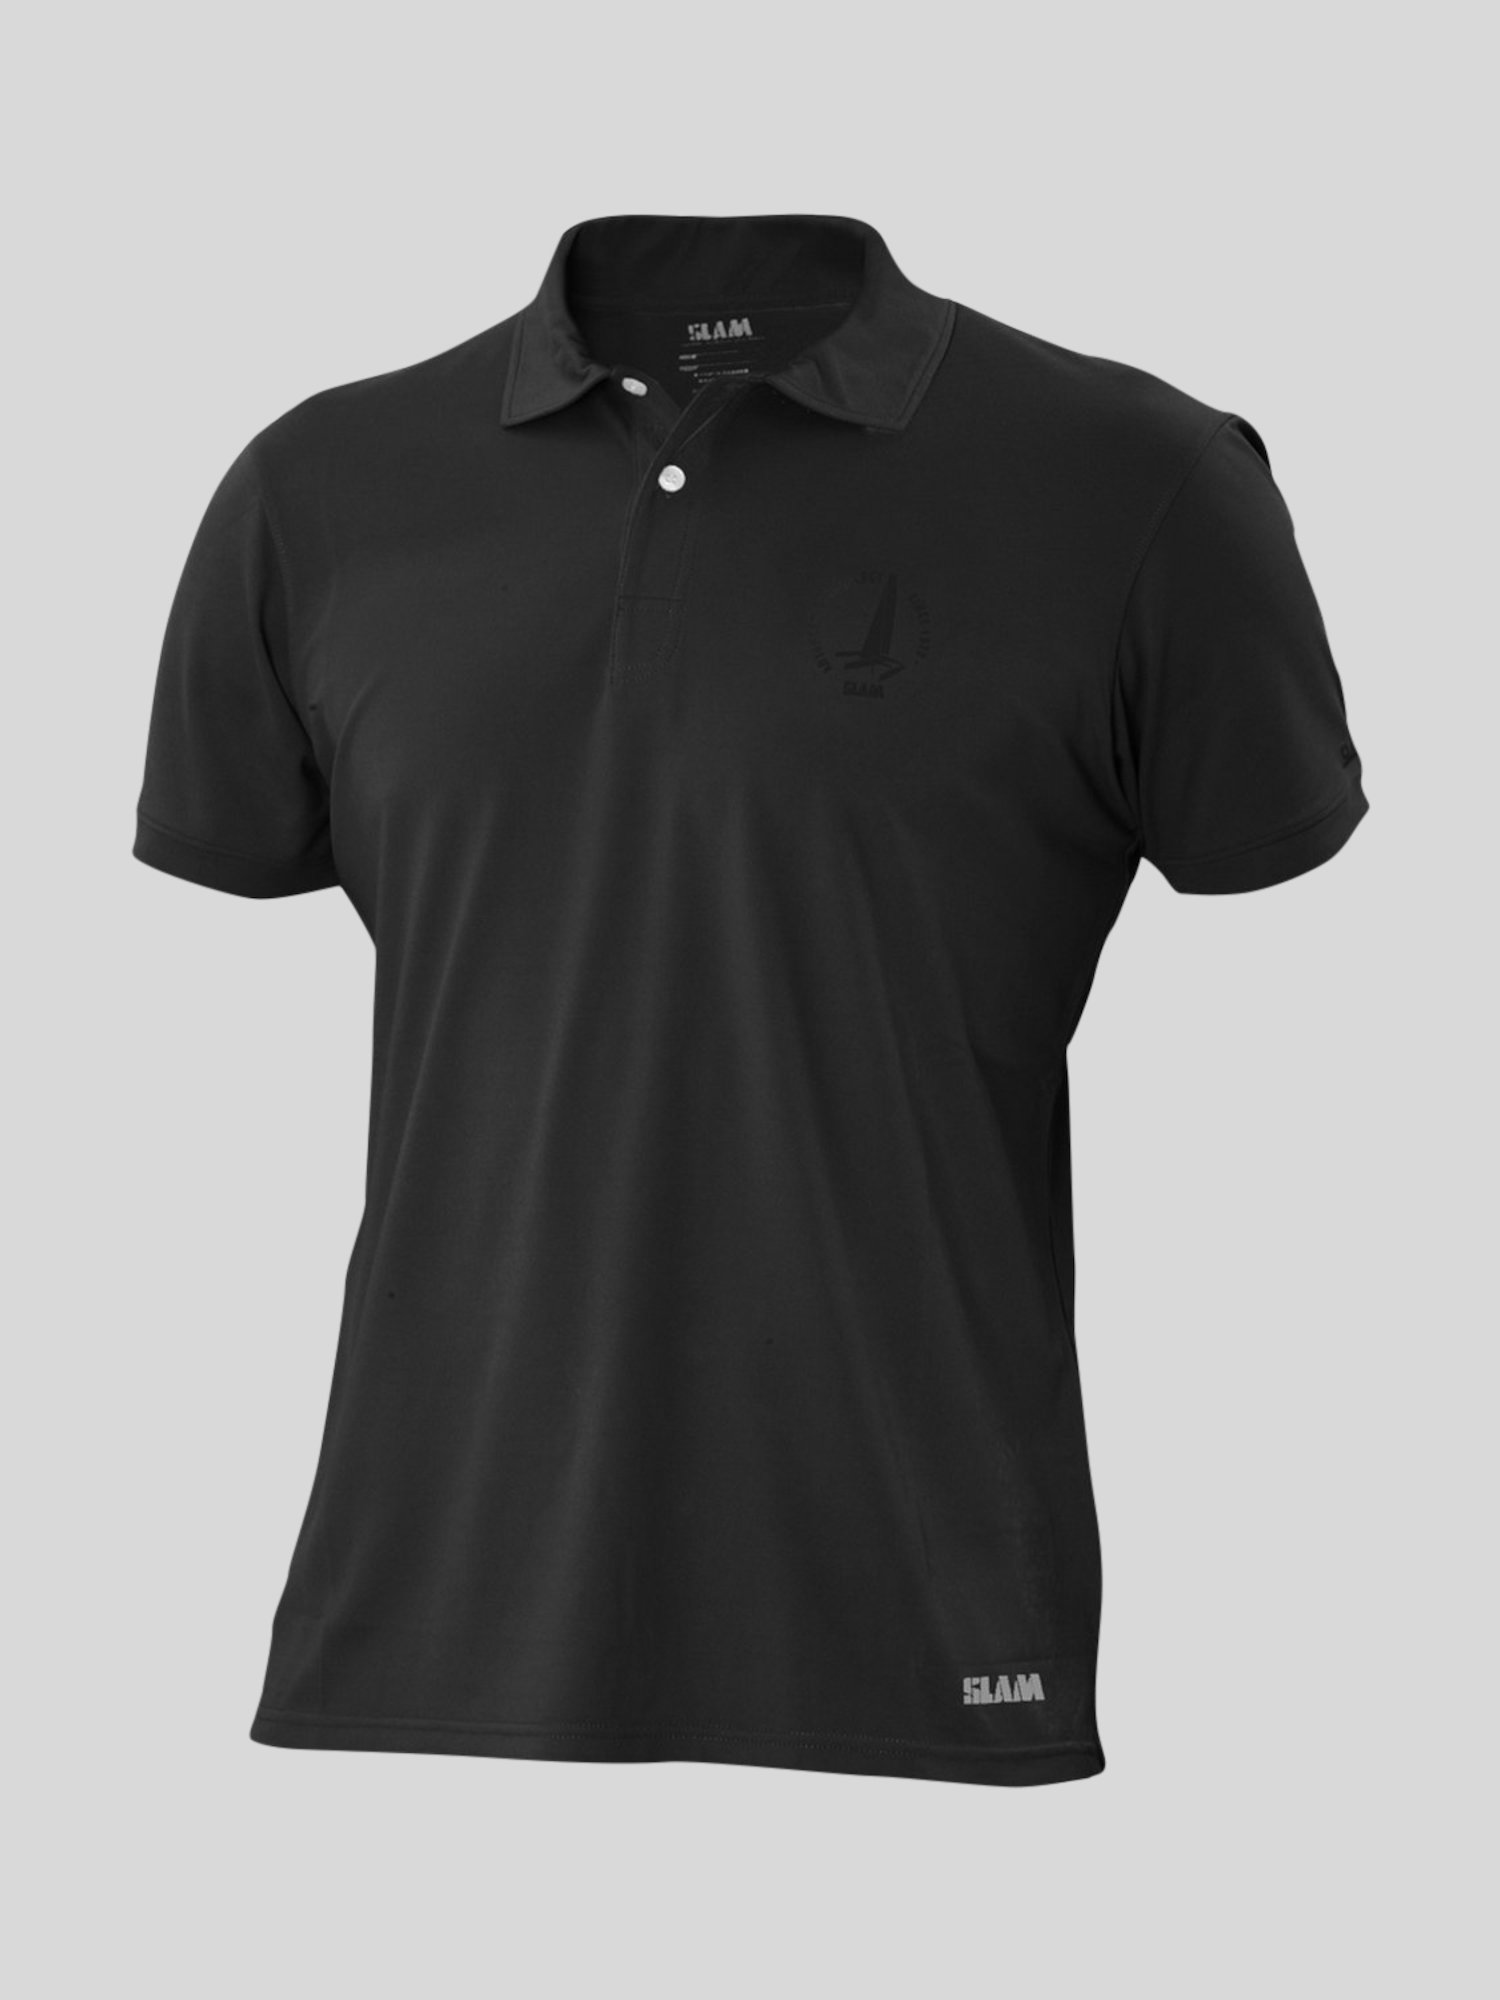 Paterson Ss polo shirt  - Black